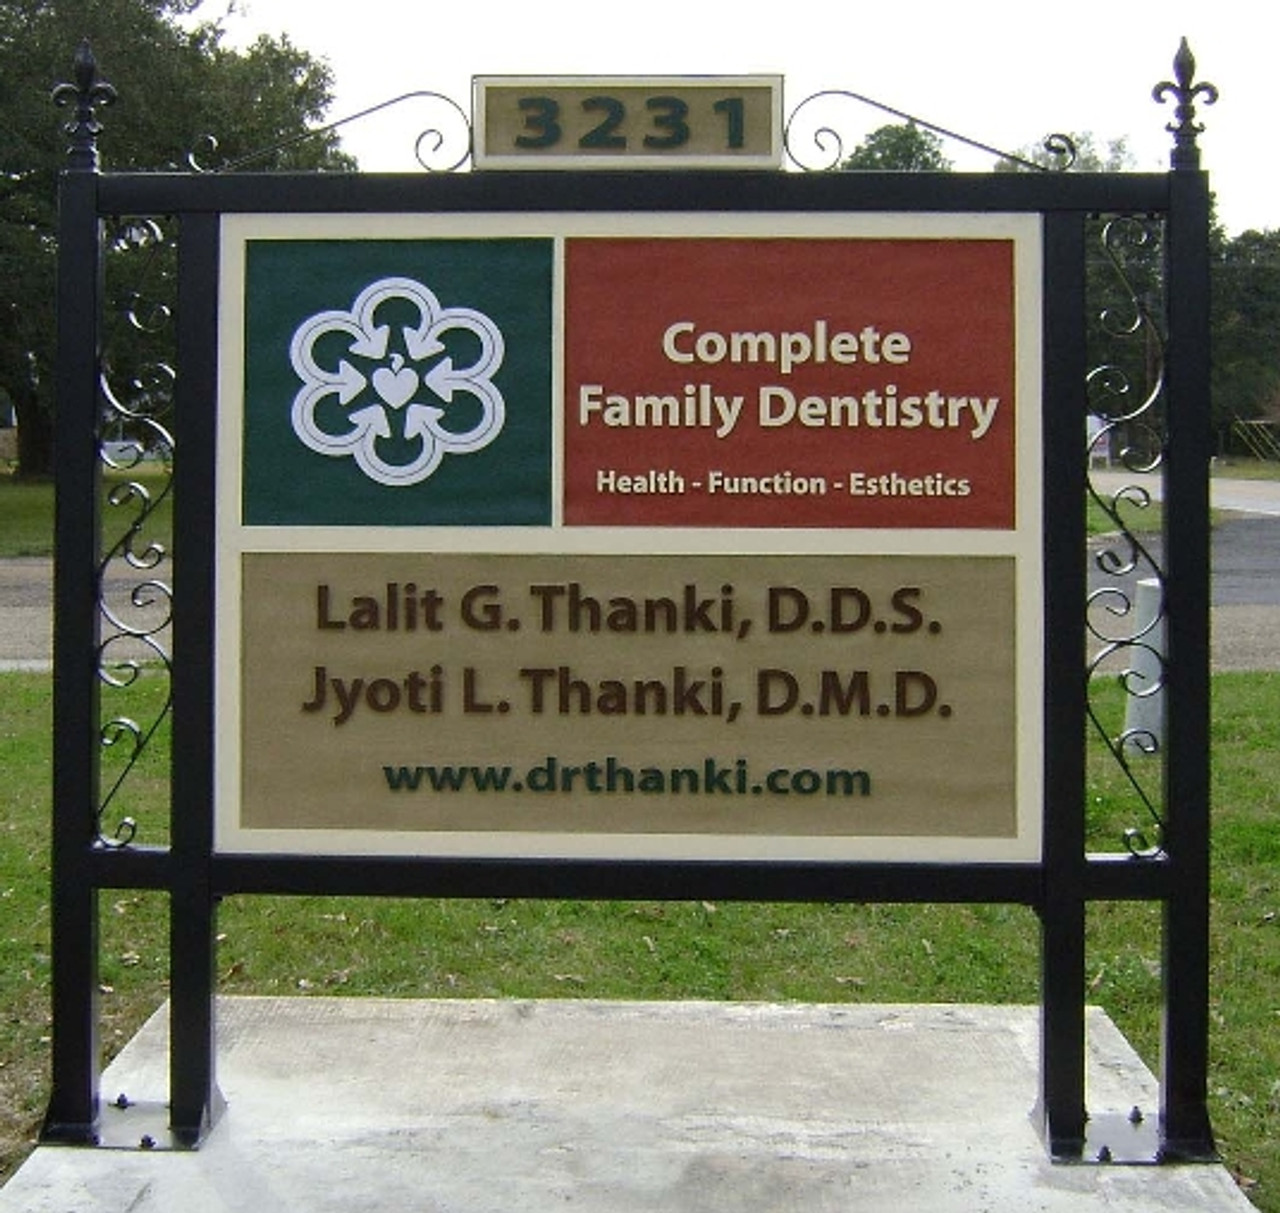 Custom fabricated frame with Fleur de lis finials and customer provided sign blank. To request a quote, please include dimensions specific to your project.